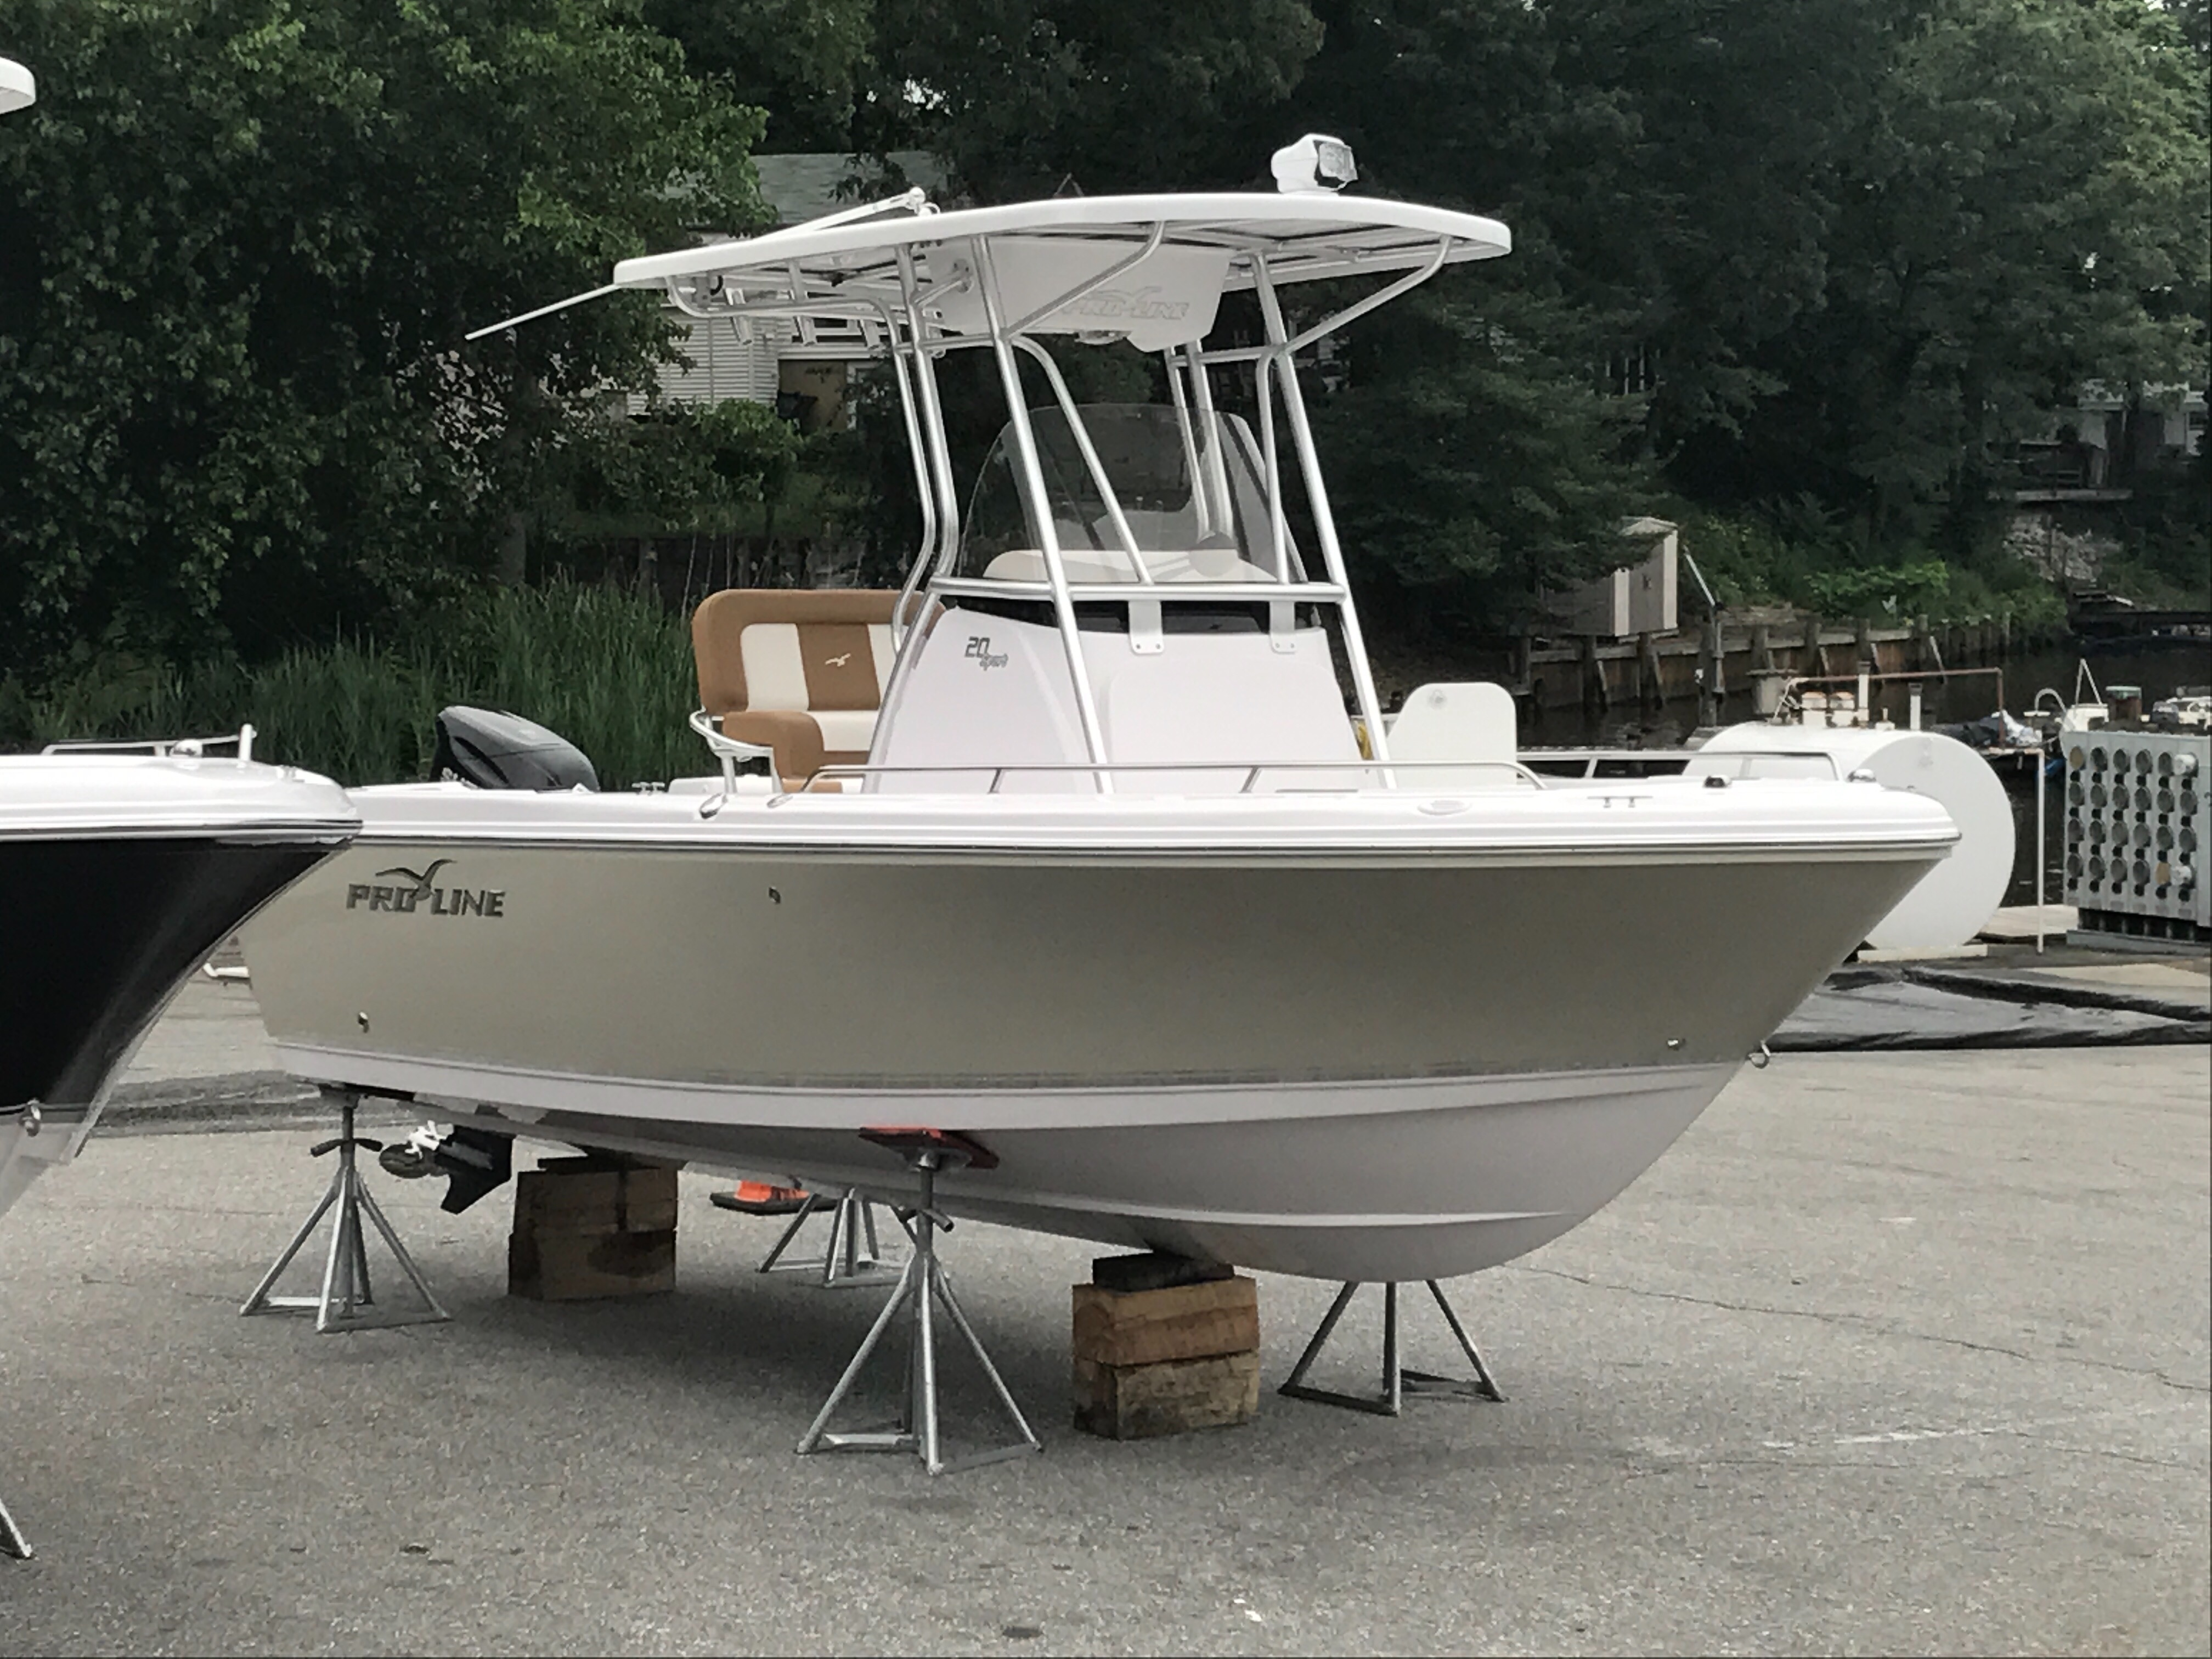 Text match mobile dating scout boats for sale